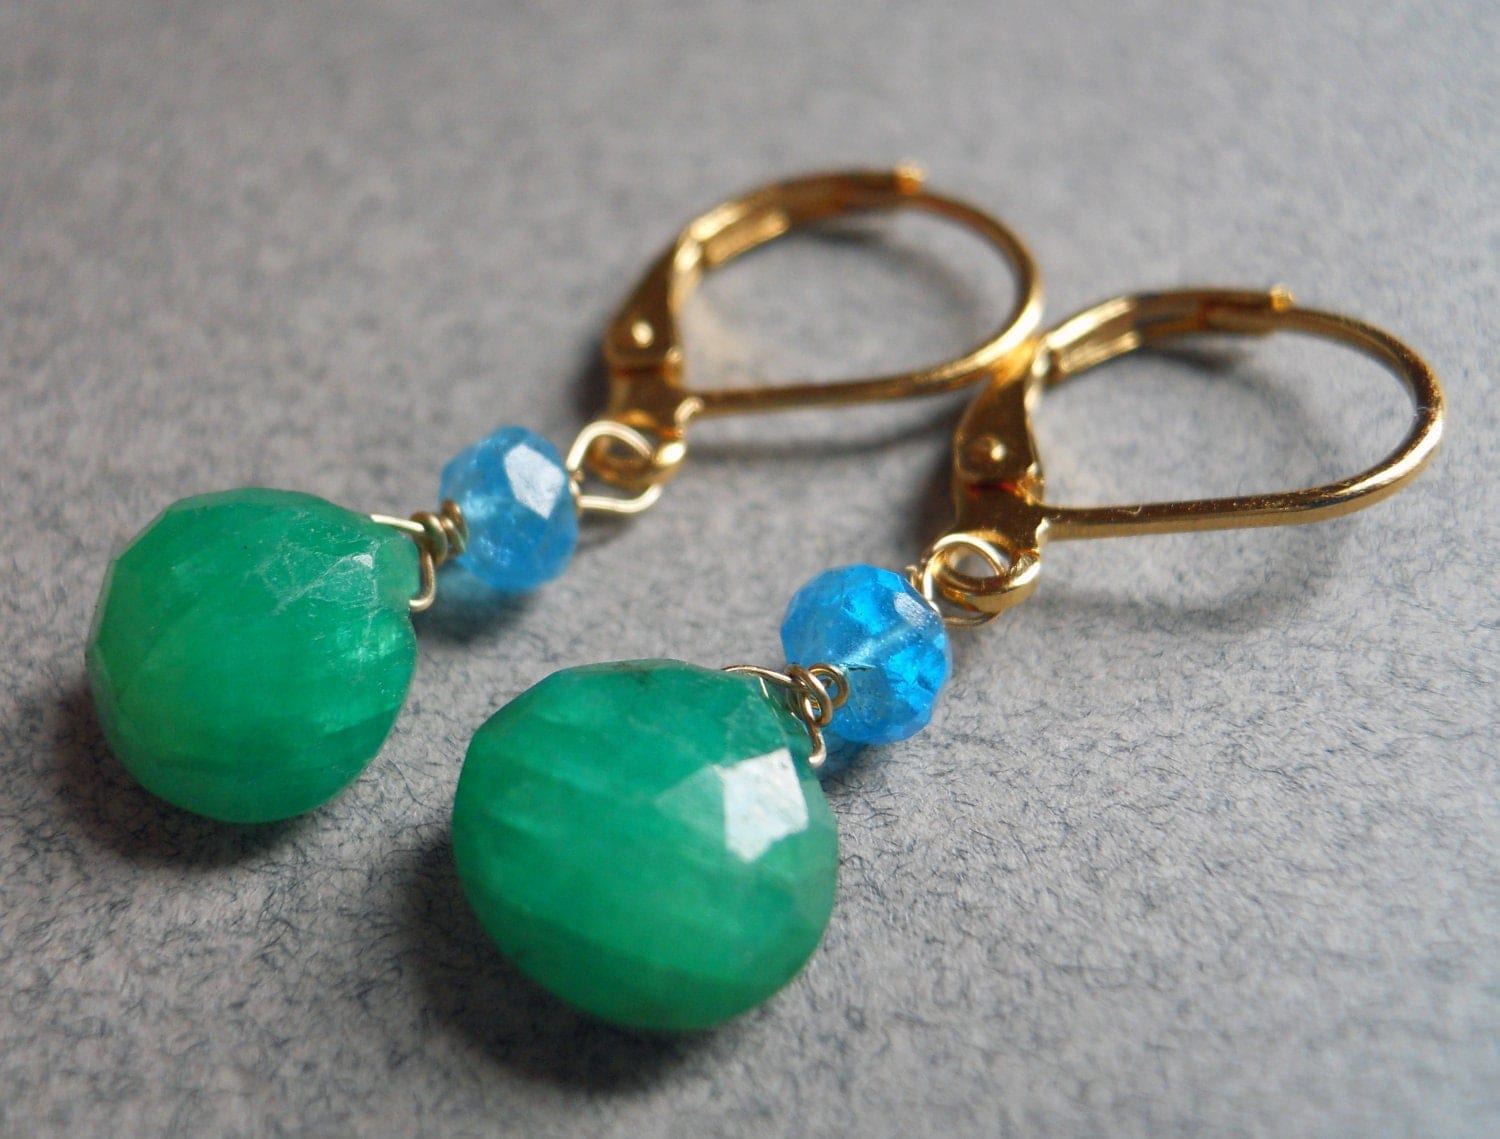 Killarney emerald and apatite lever back drop earrings - $42.00 USD